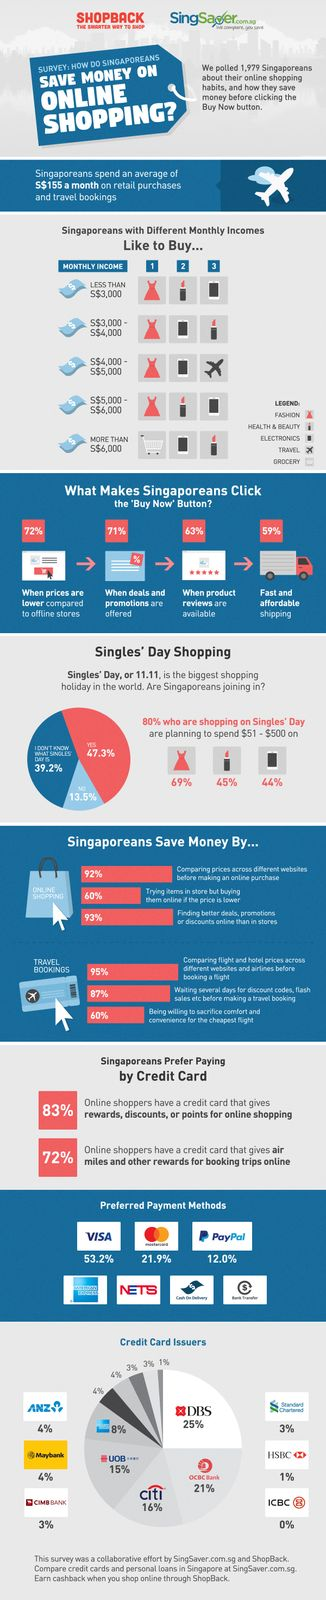 infographic-how-singaporeans-save-money-on-online-shopping